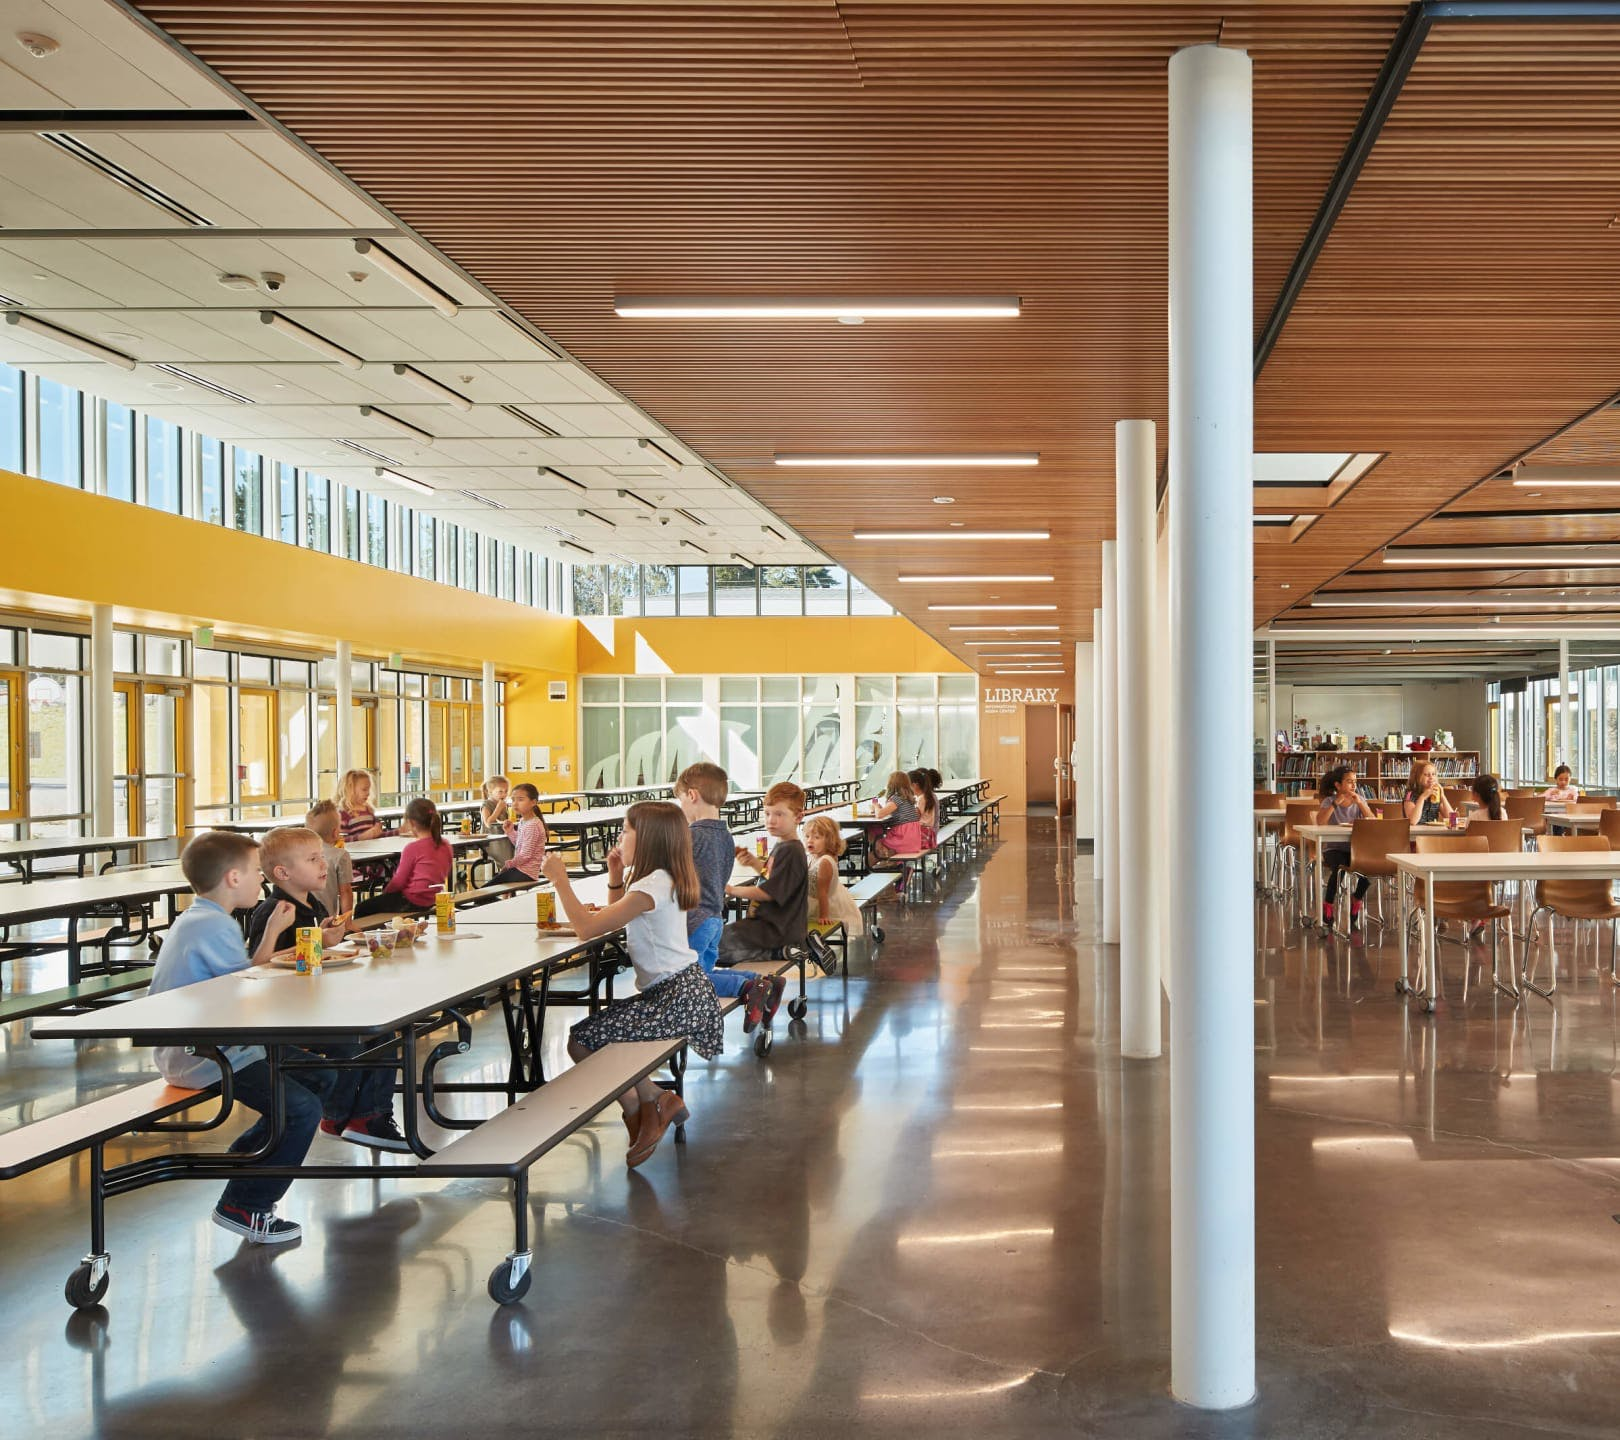 School Interior Design: The Best New Learning Centers Are Selected For AIA's 2017